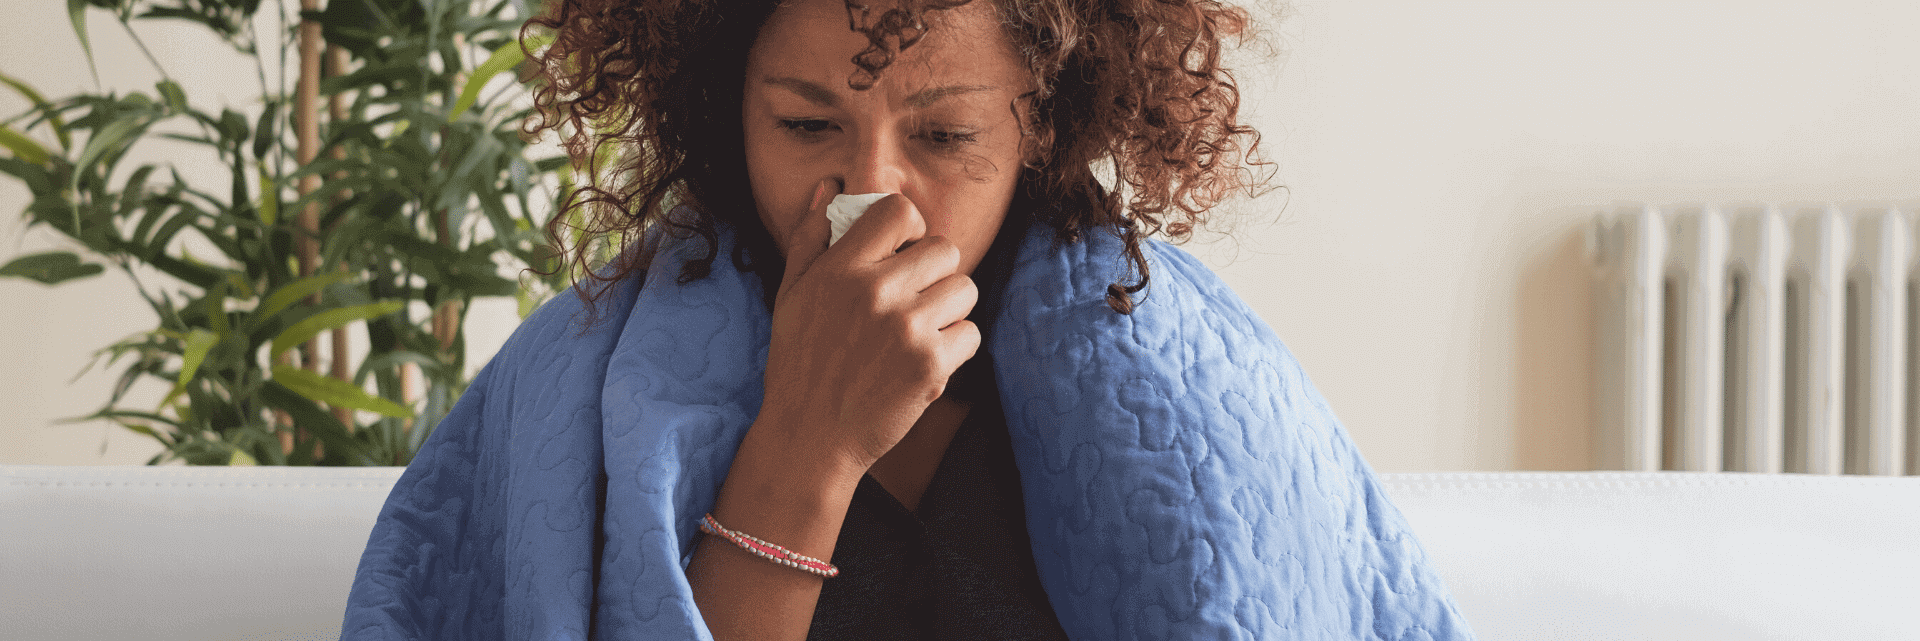 Why you should get a flu shot this winter